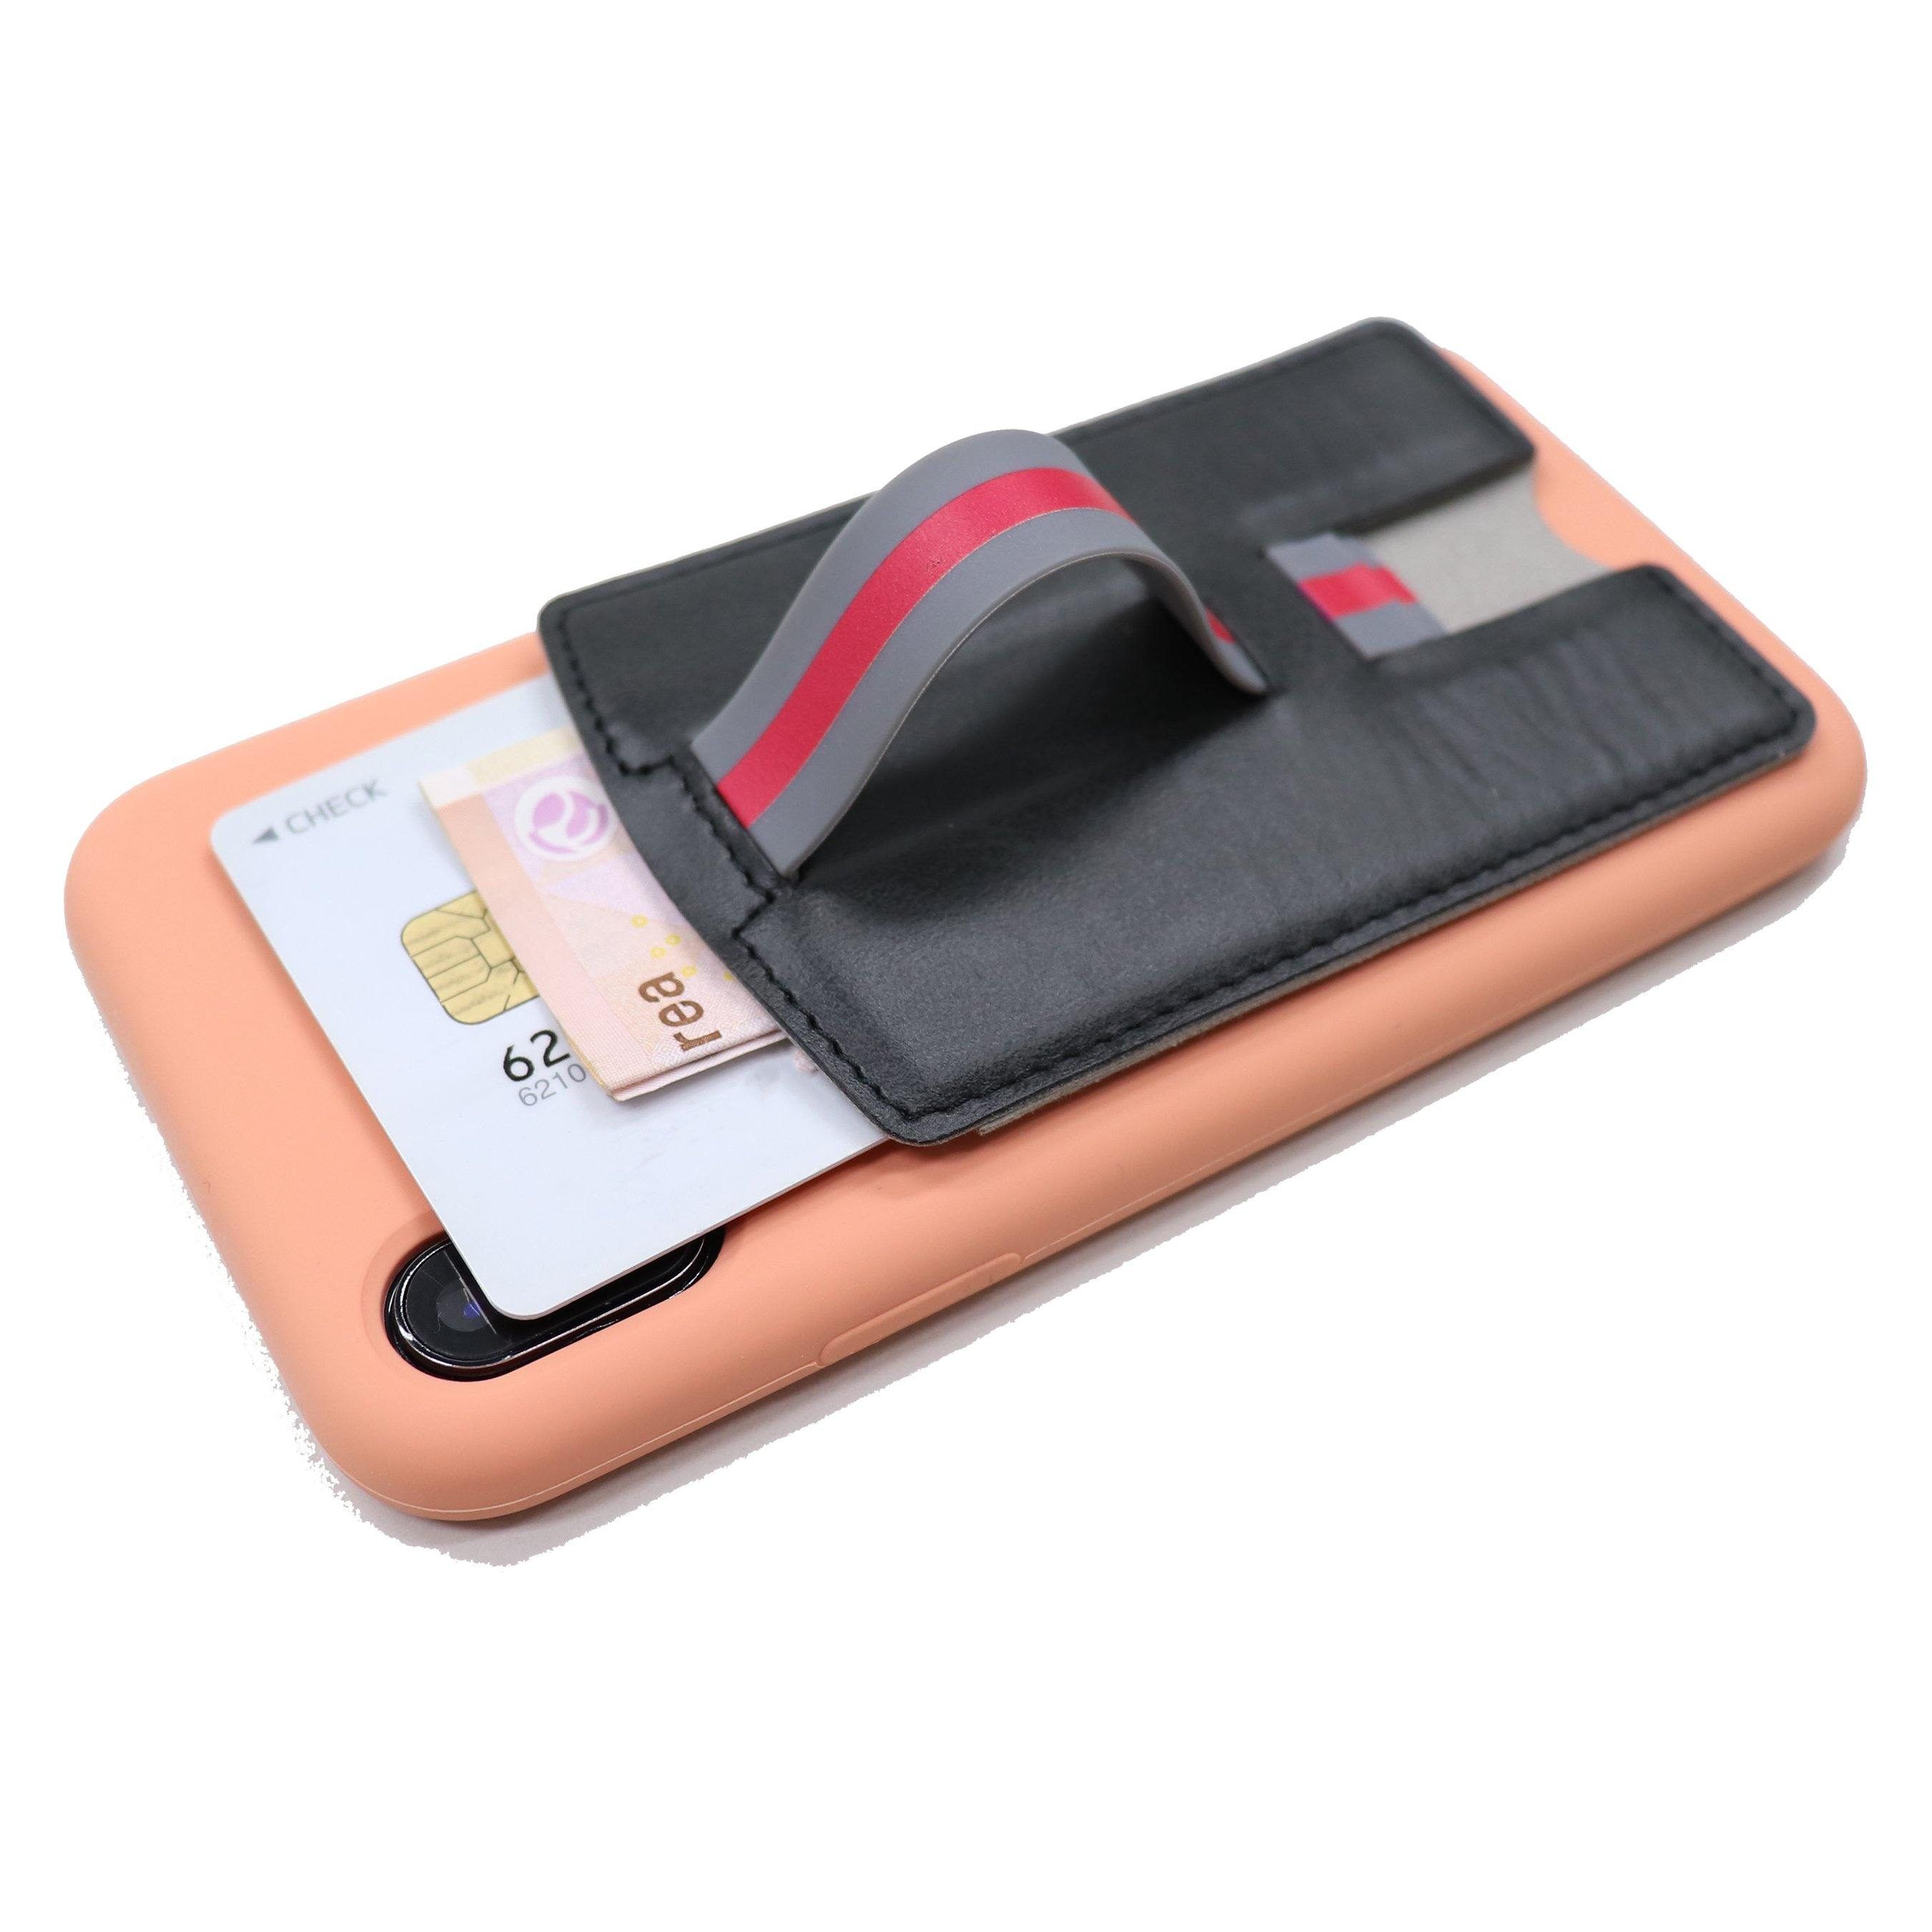 CARI Universal 3 in 1 Phone Wallet with Card Holder, Stand, and Strap - Black